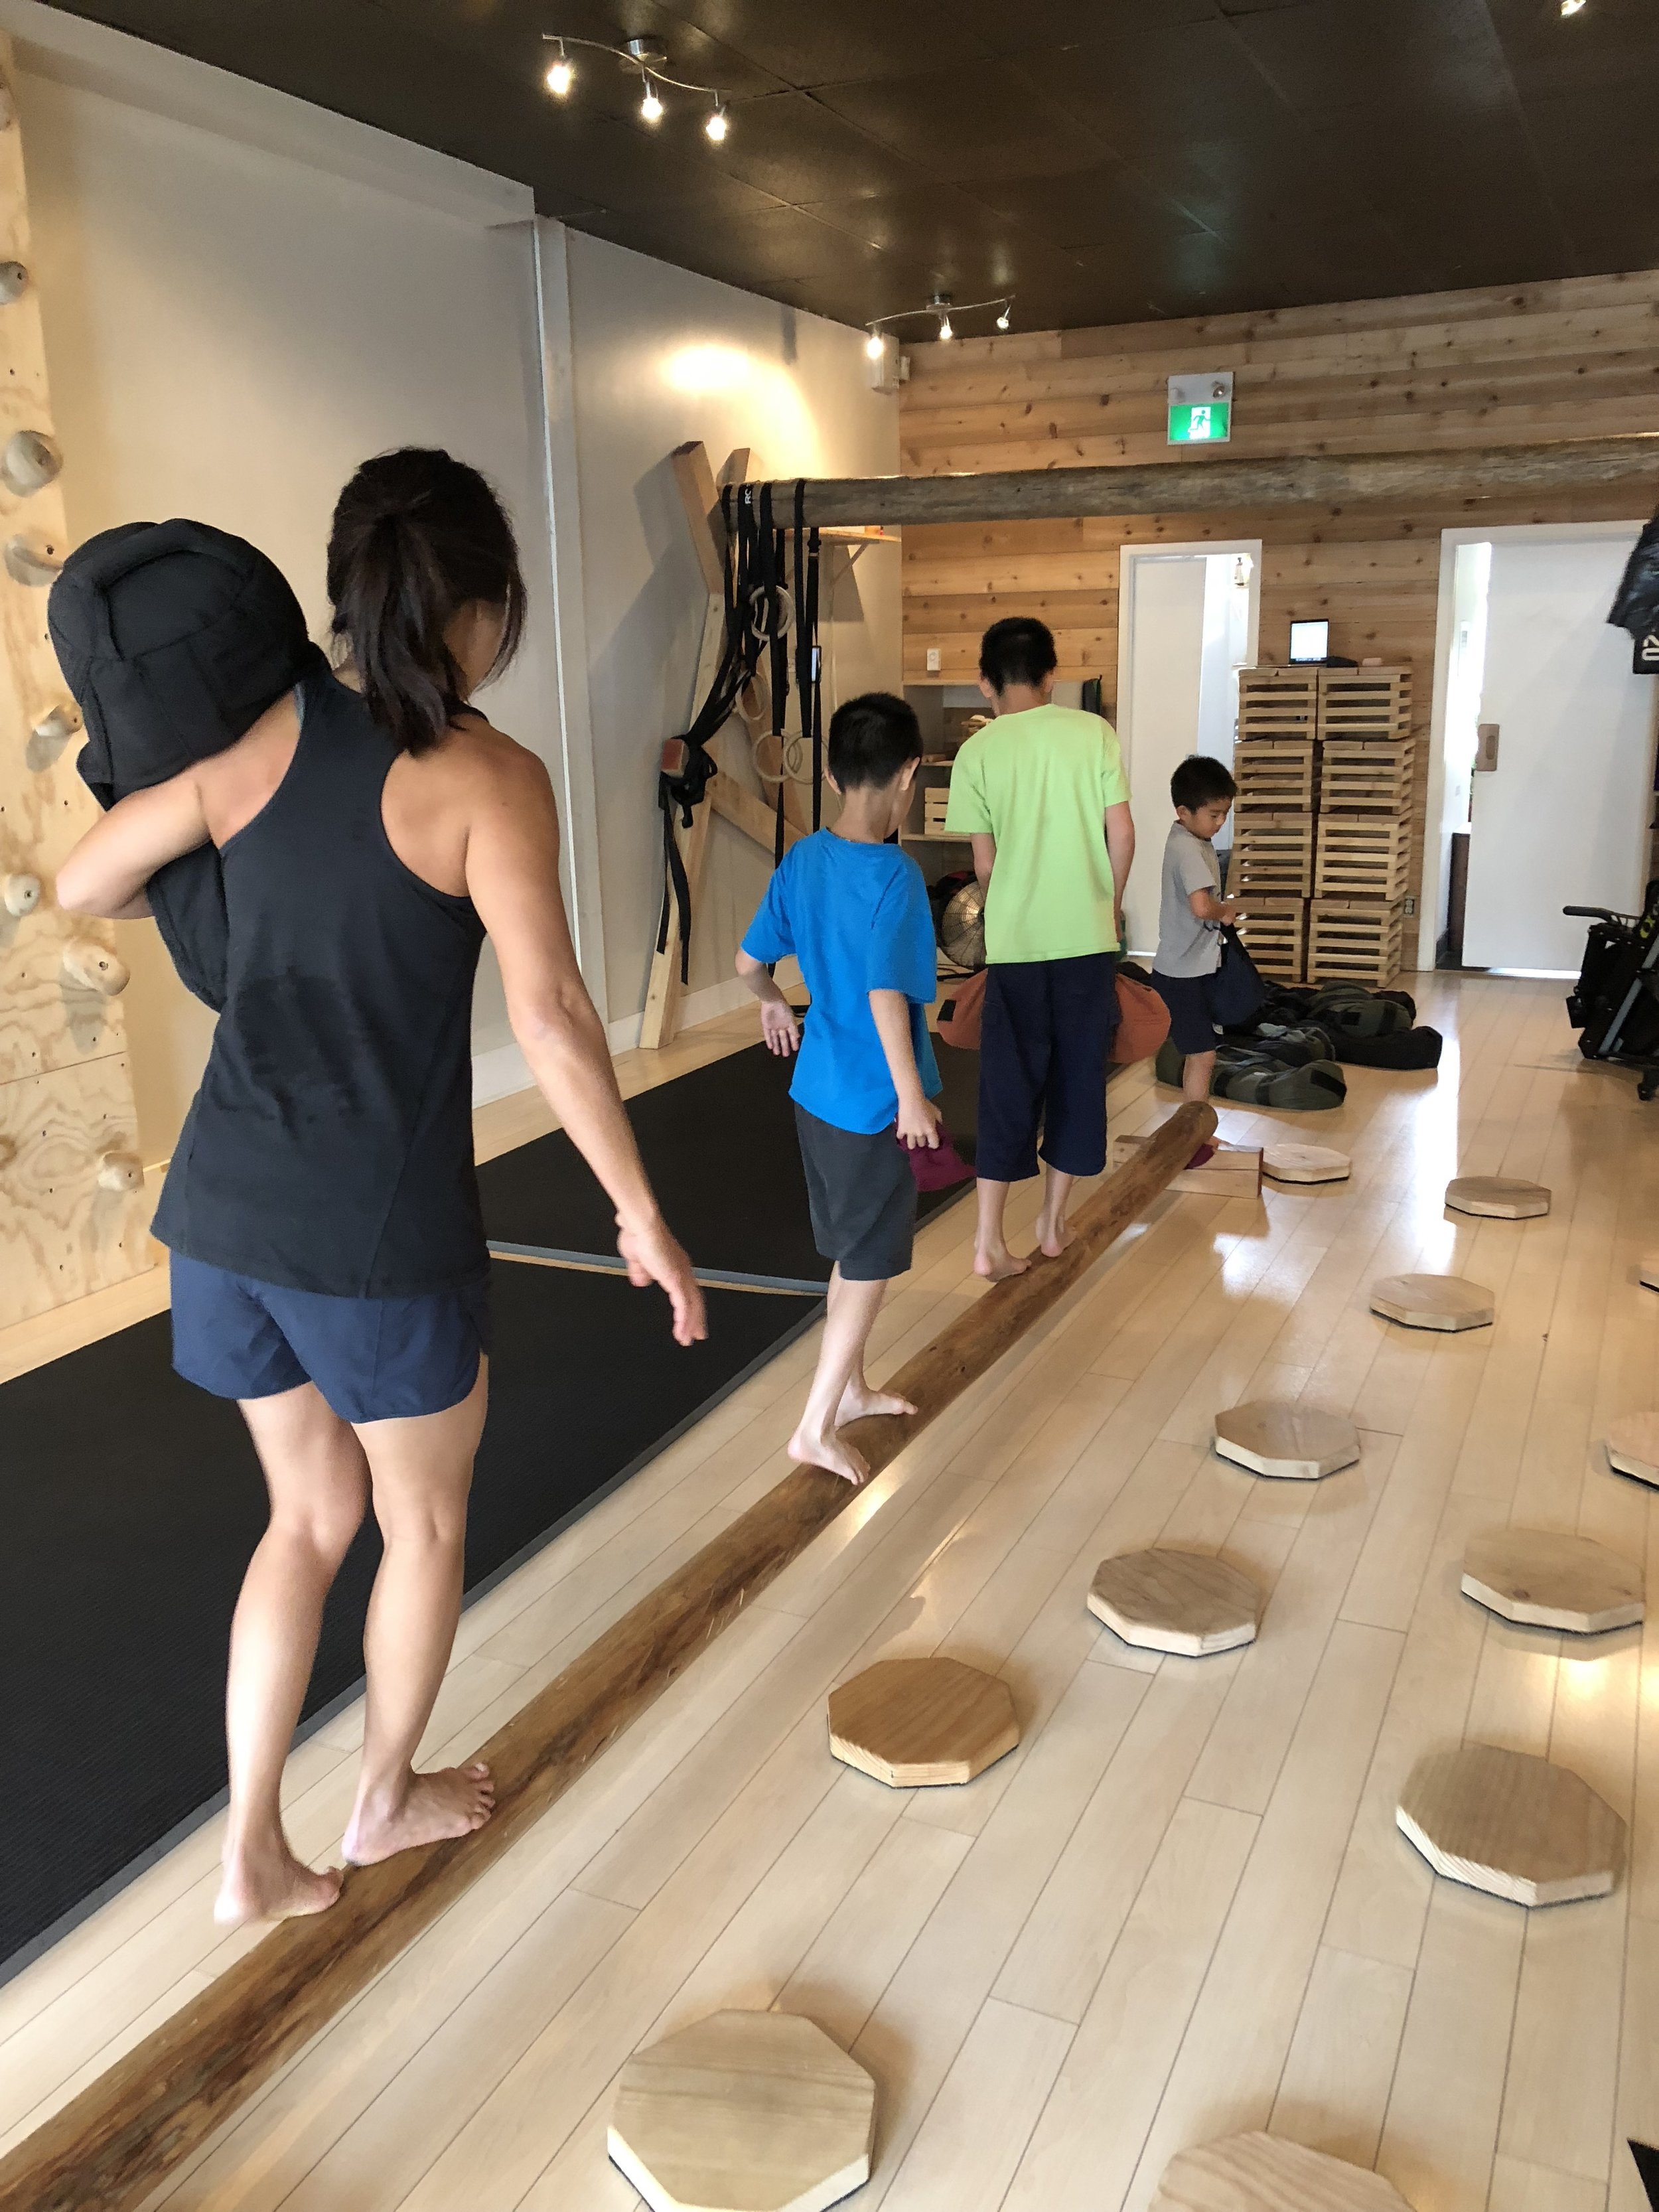 Influencing her three boys to value healthy physicality